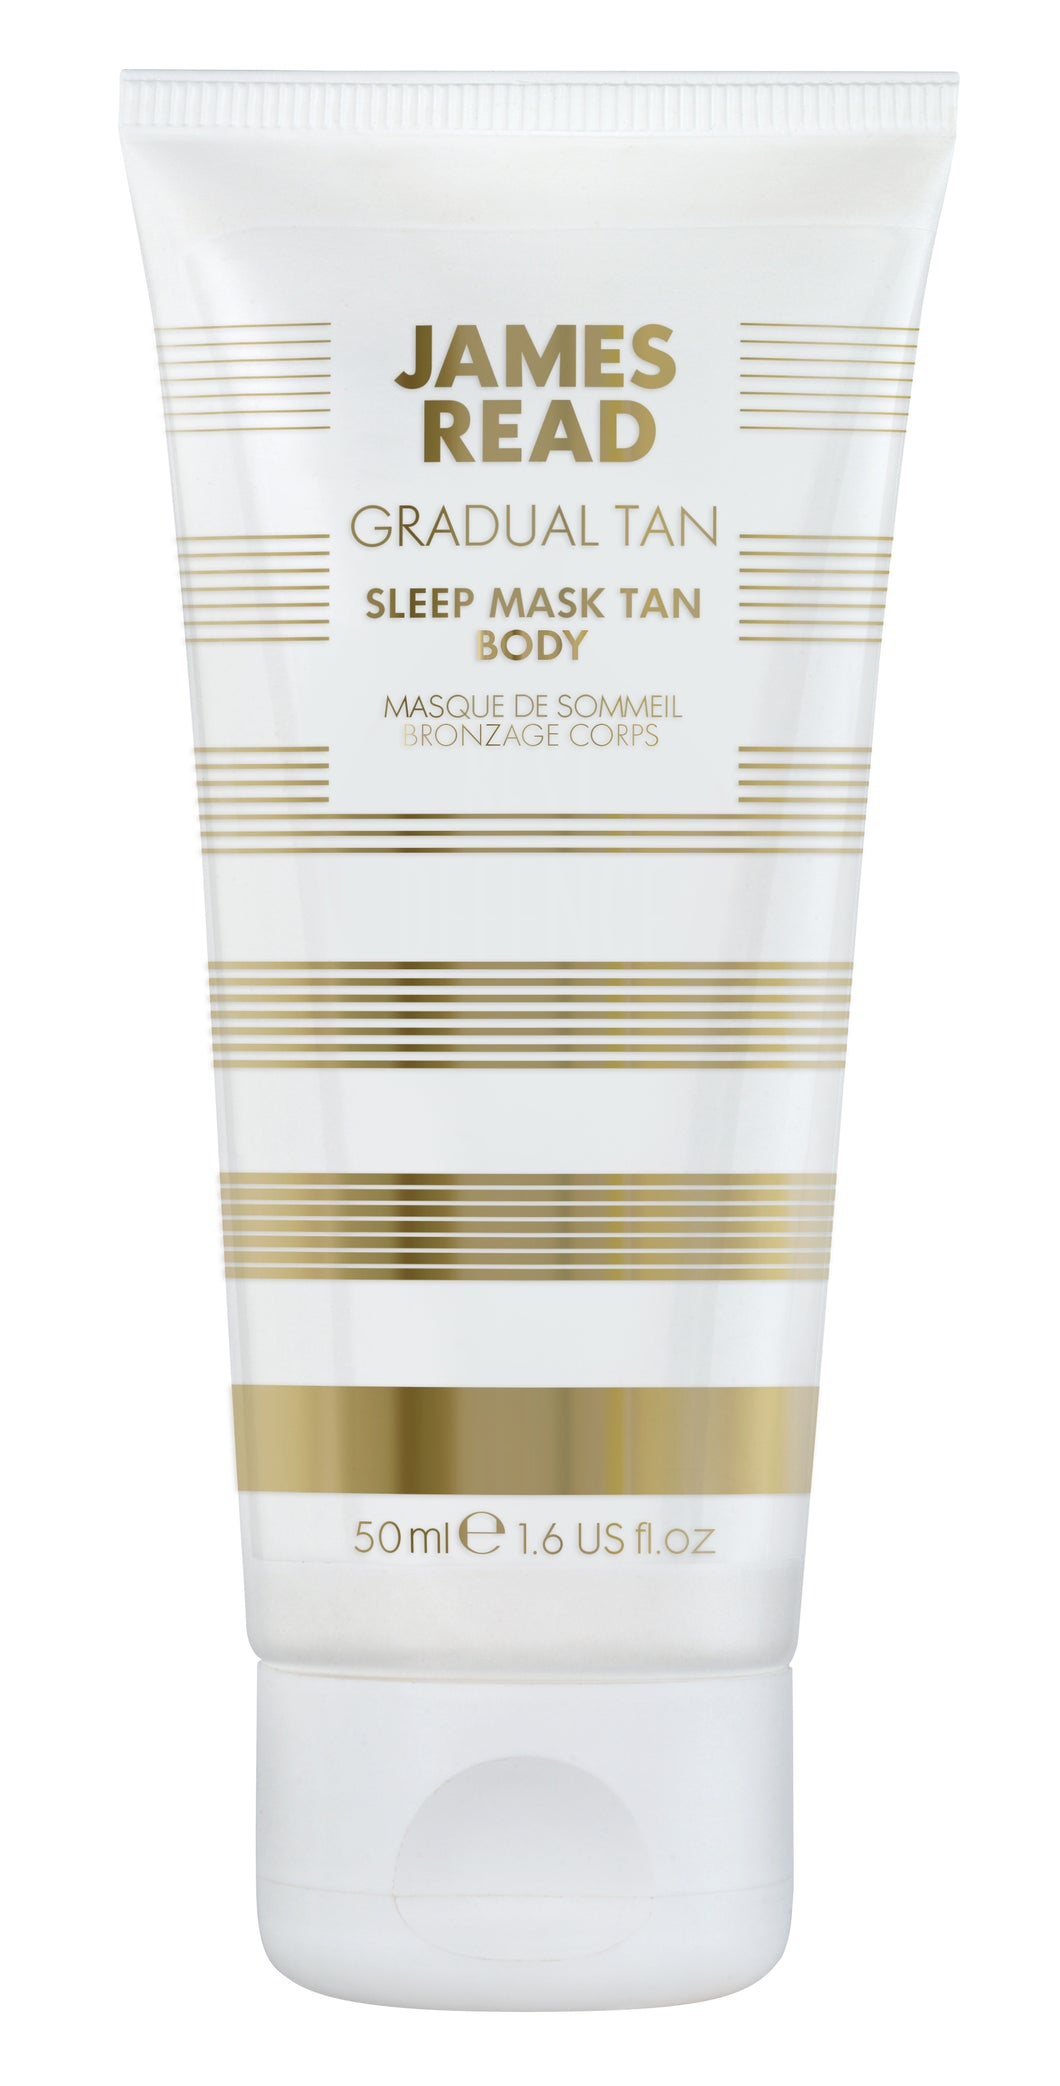 SLEEP MASK TAN BODY (Tube)